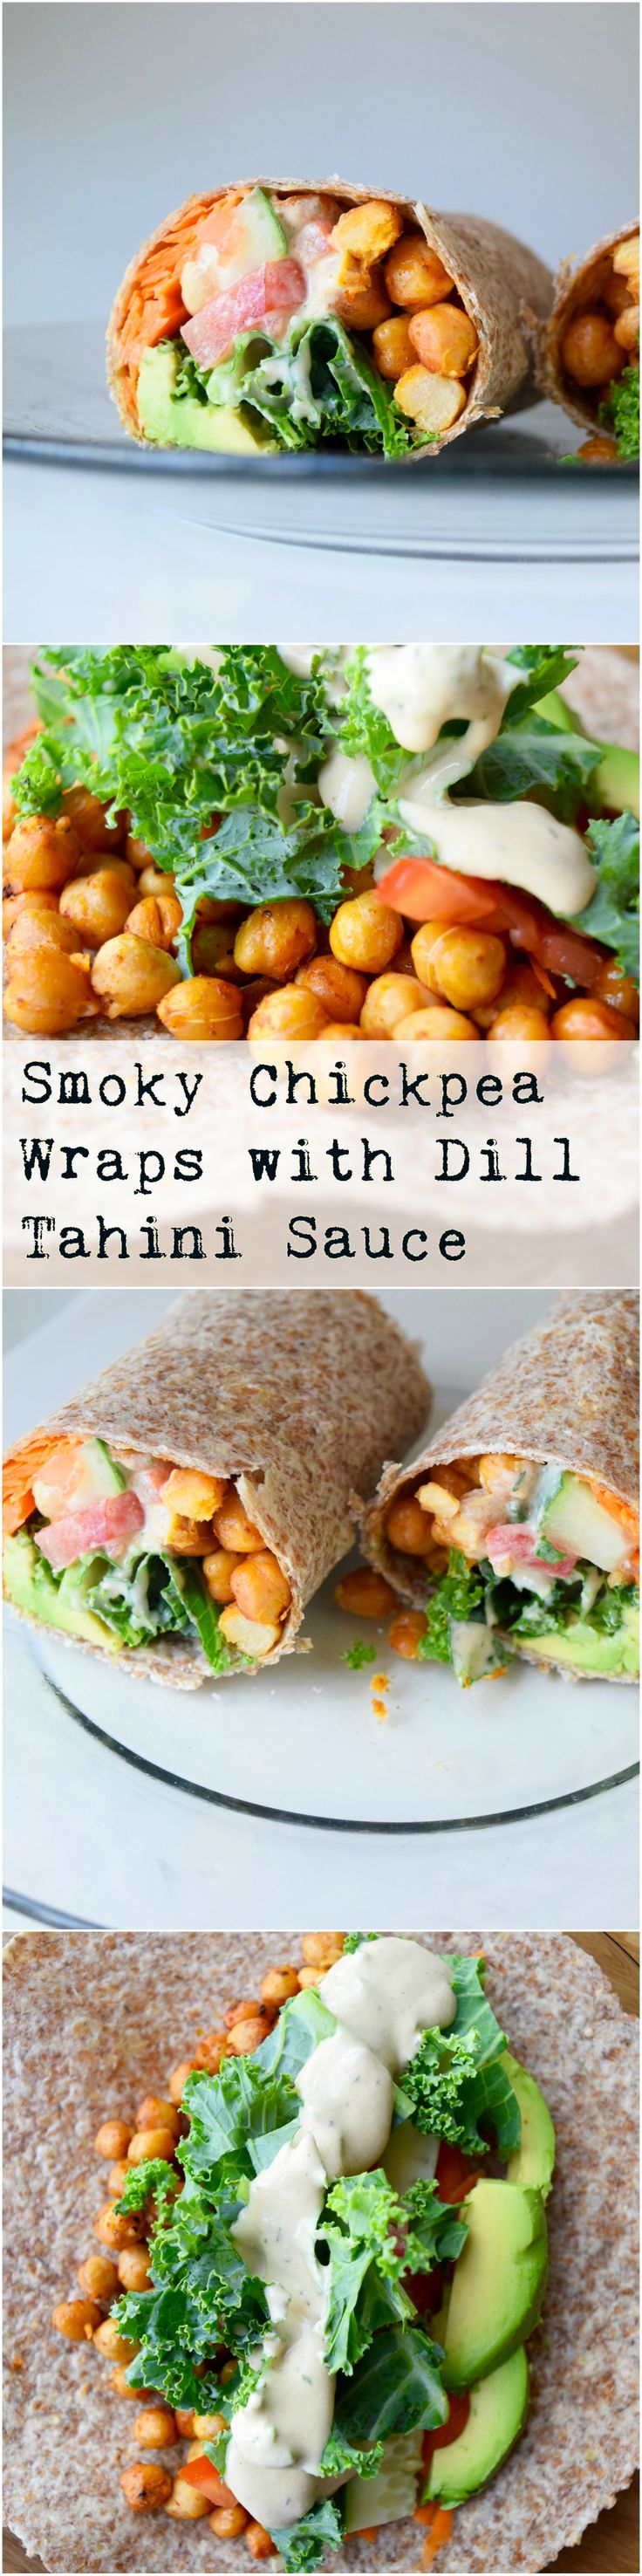 This vegan wrap is super easy and insanely delicious!